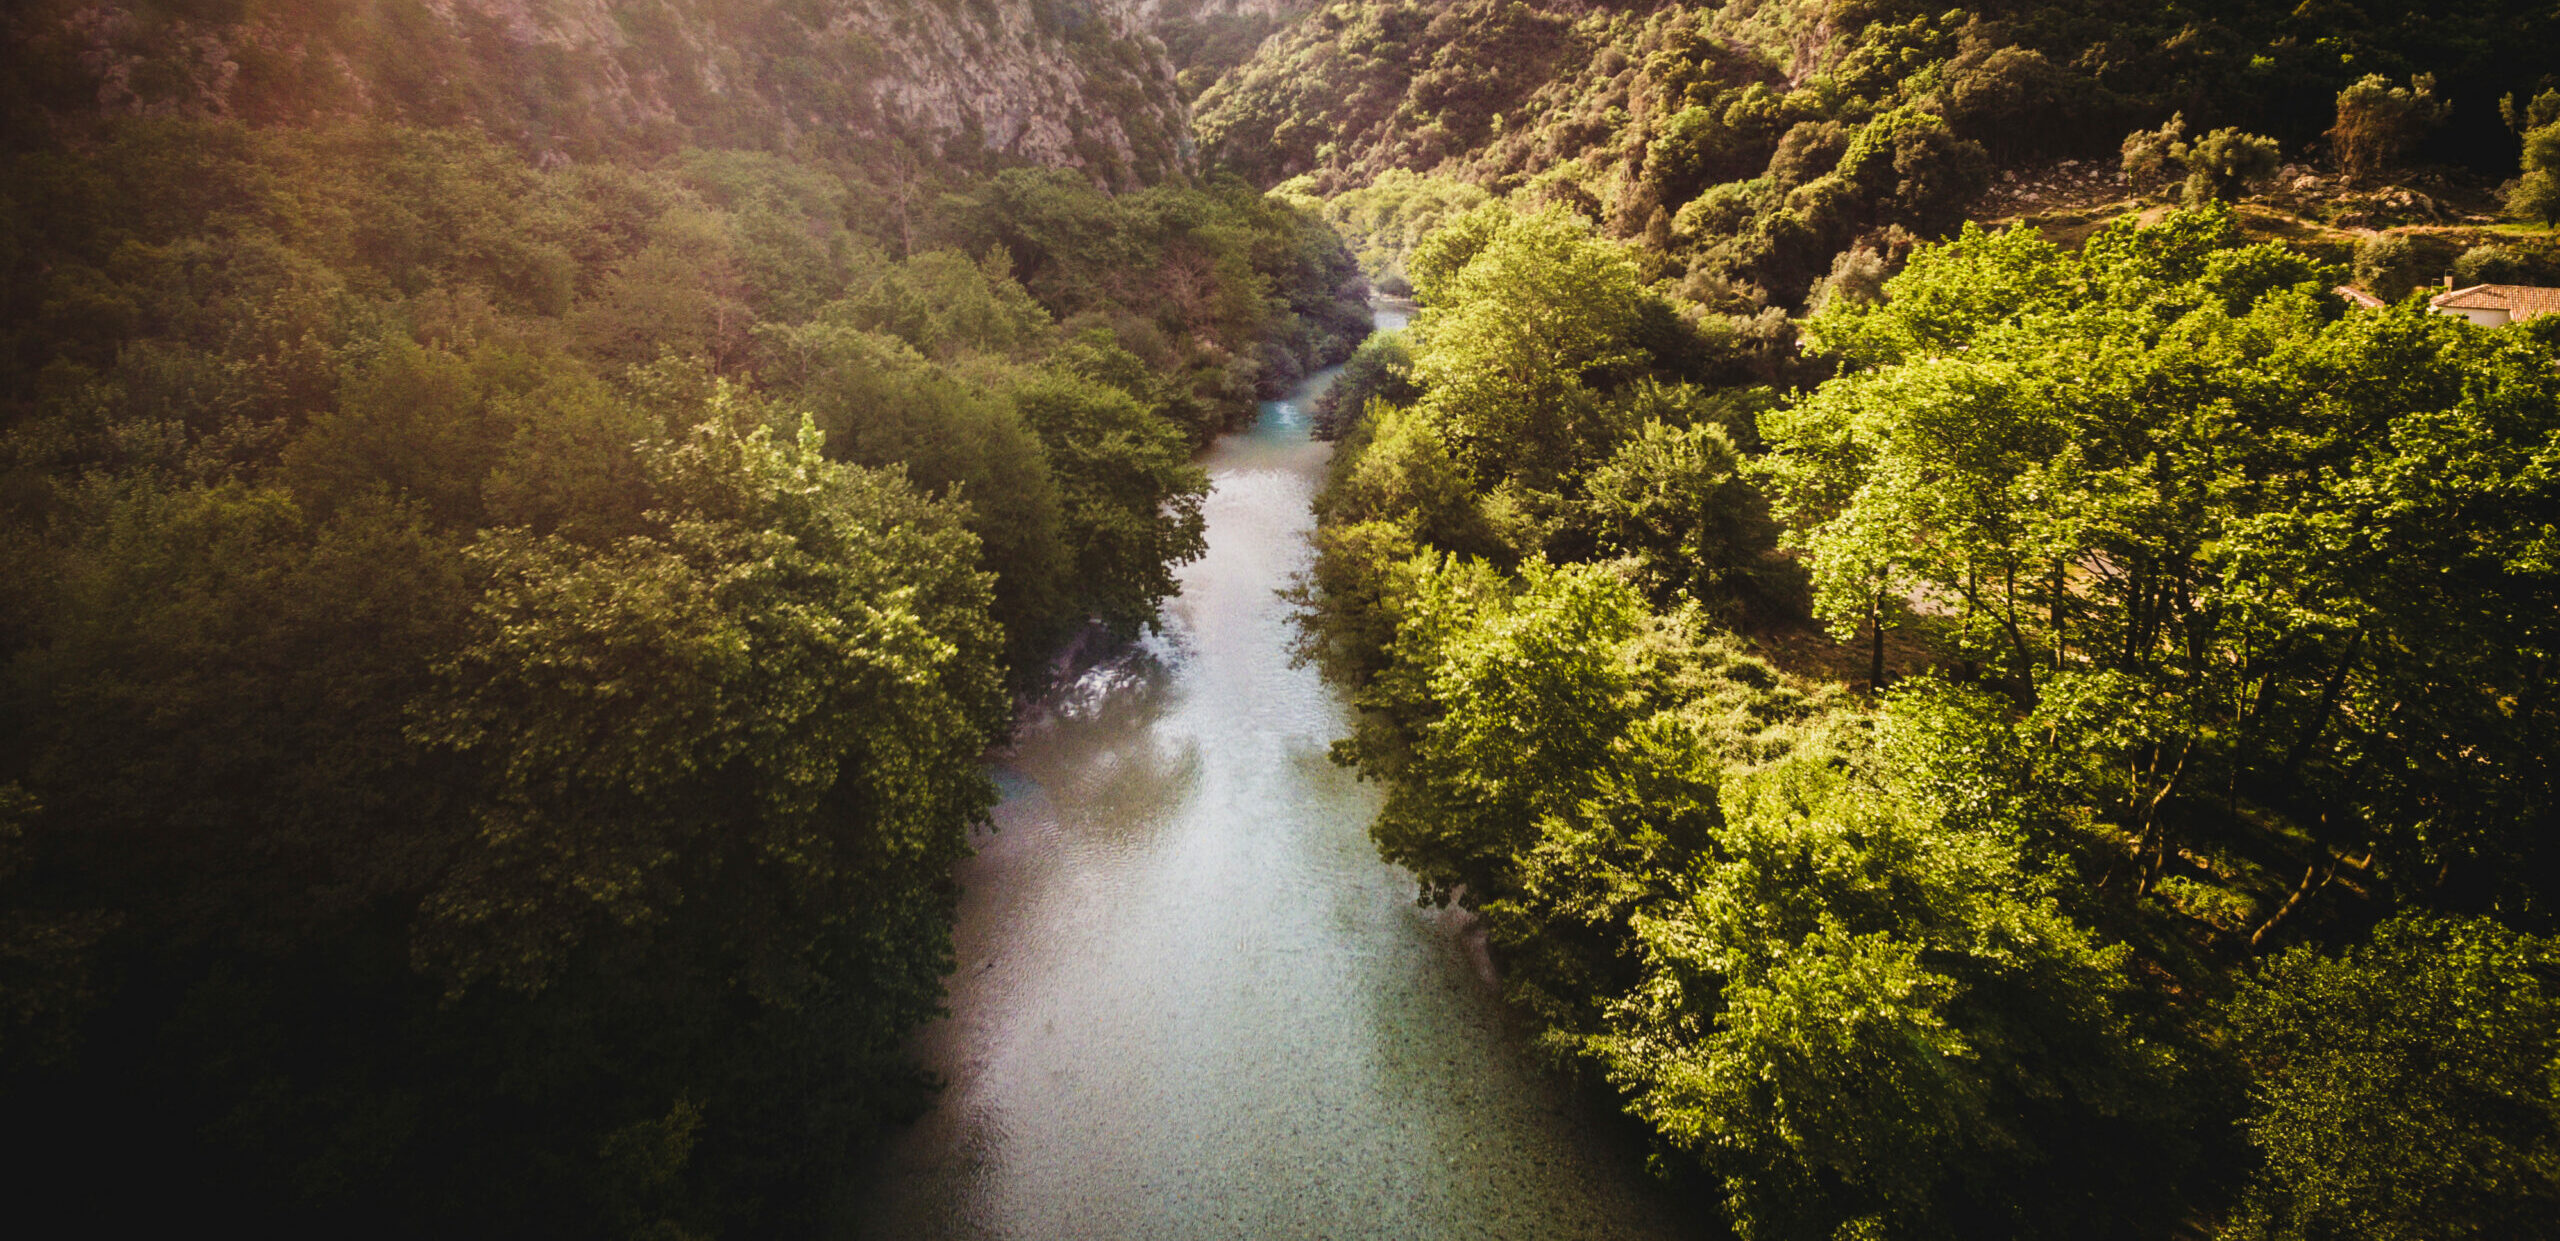 The Acheron River and its legends